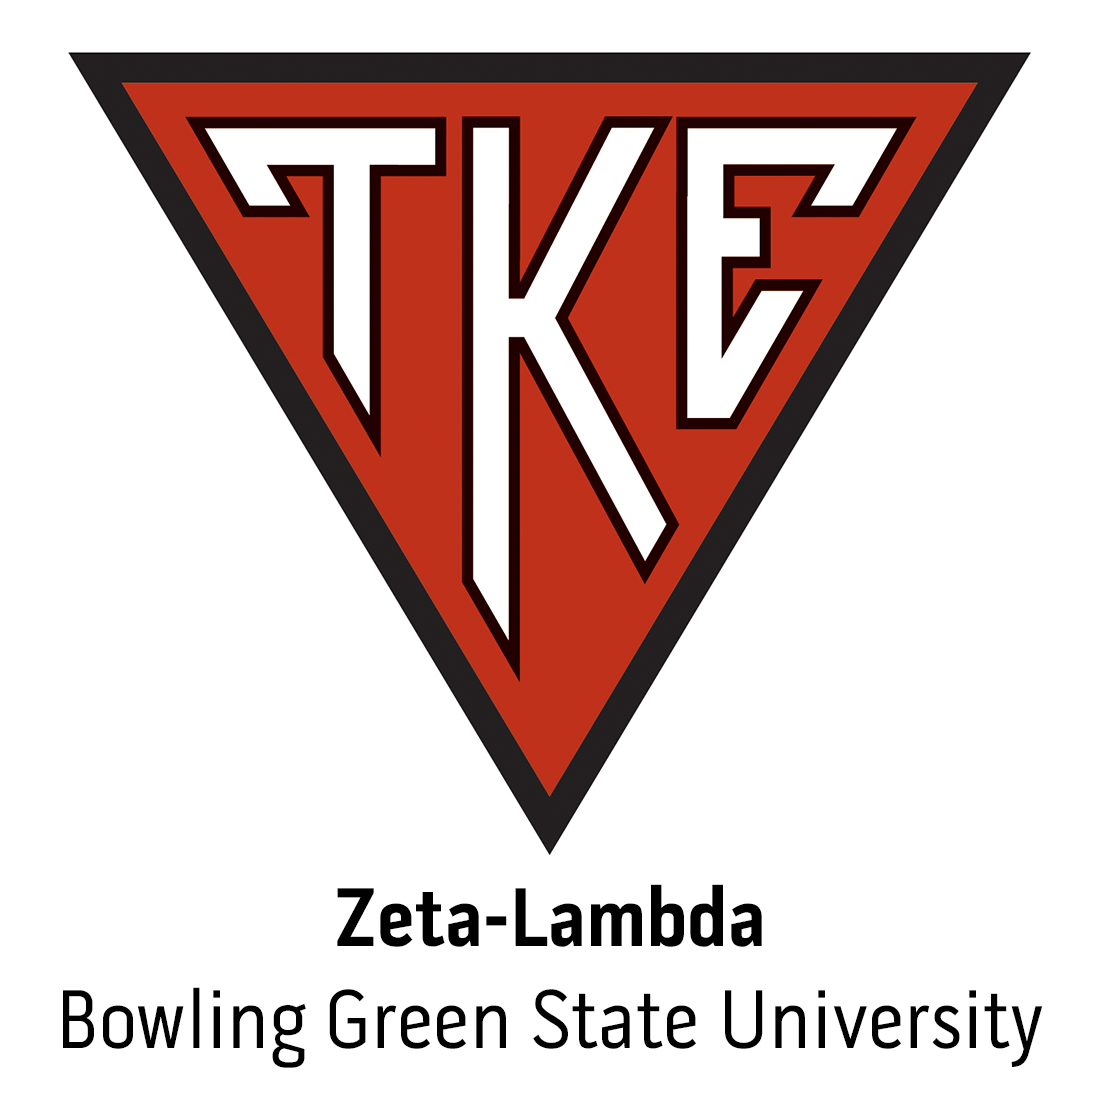 Zeta-Lambda Chapter at Bowling Green State University